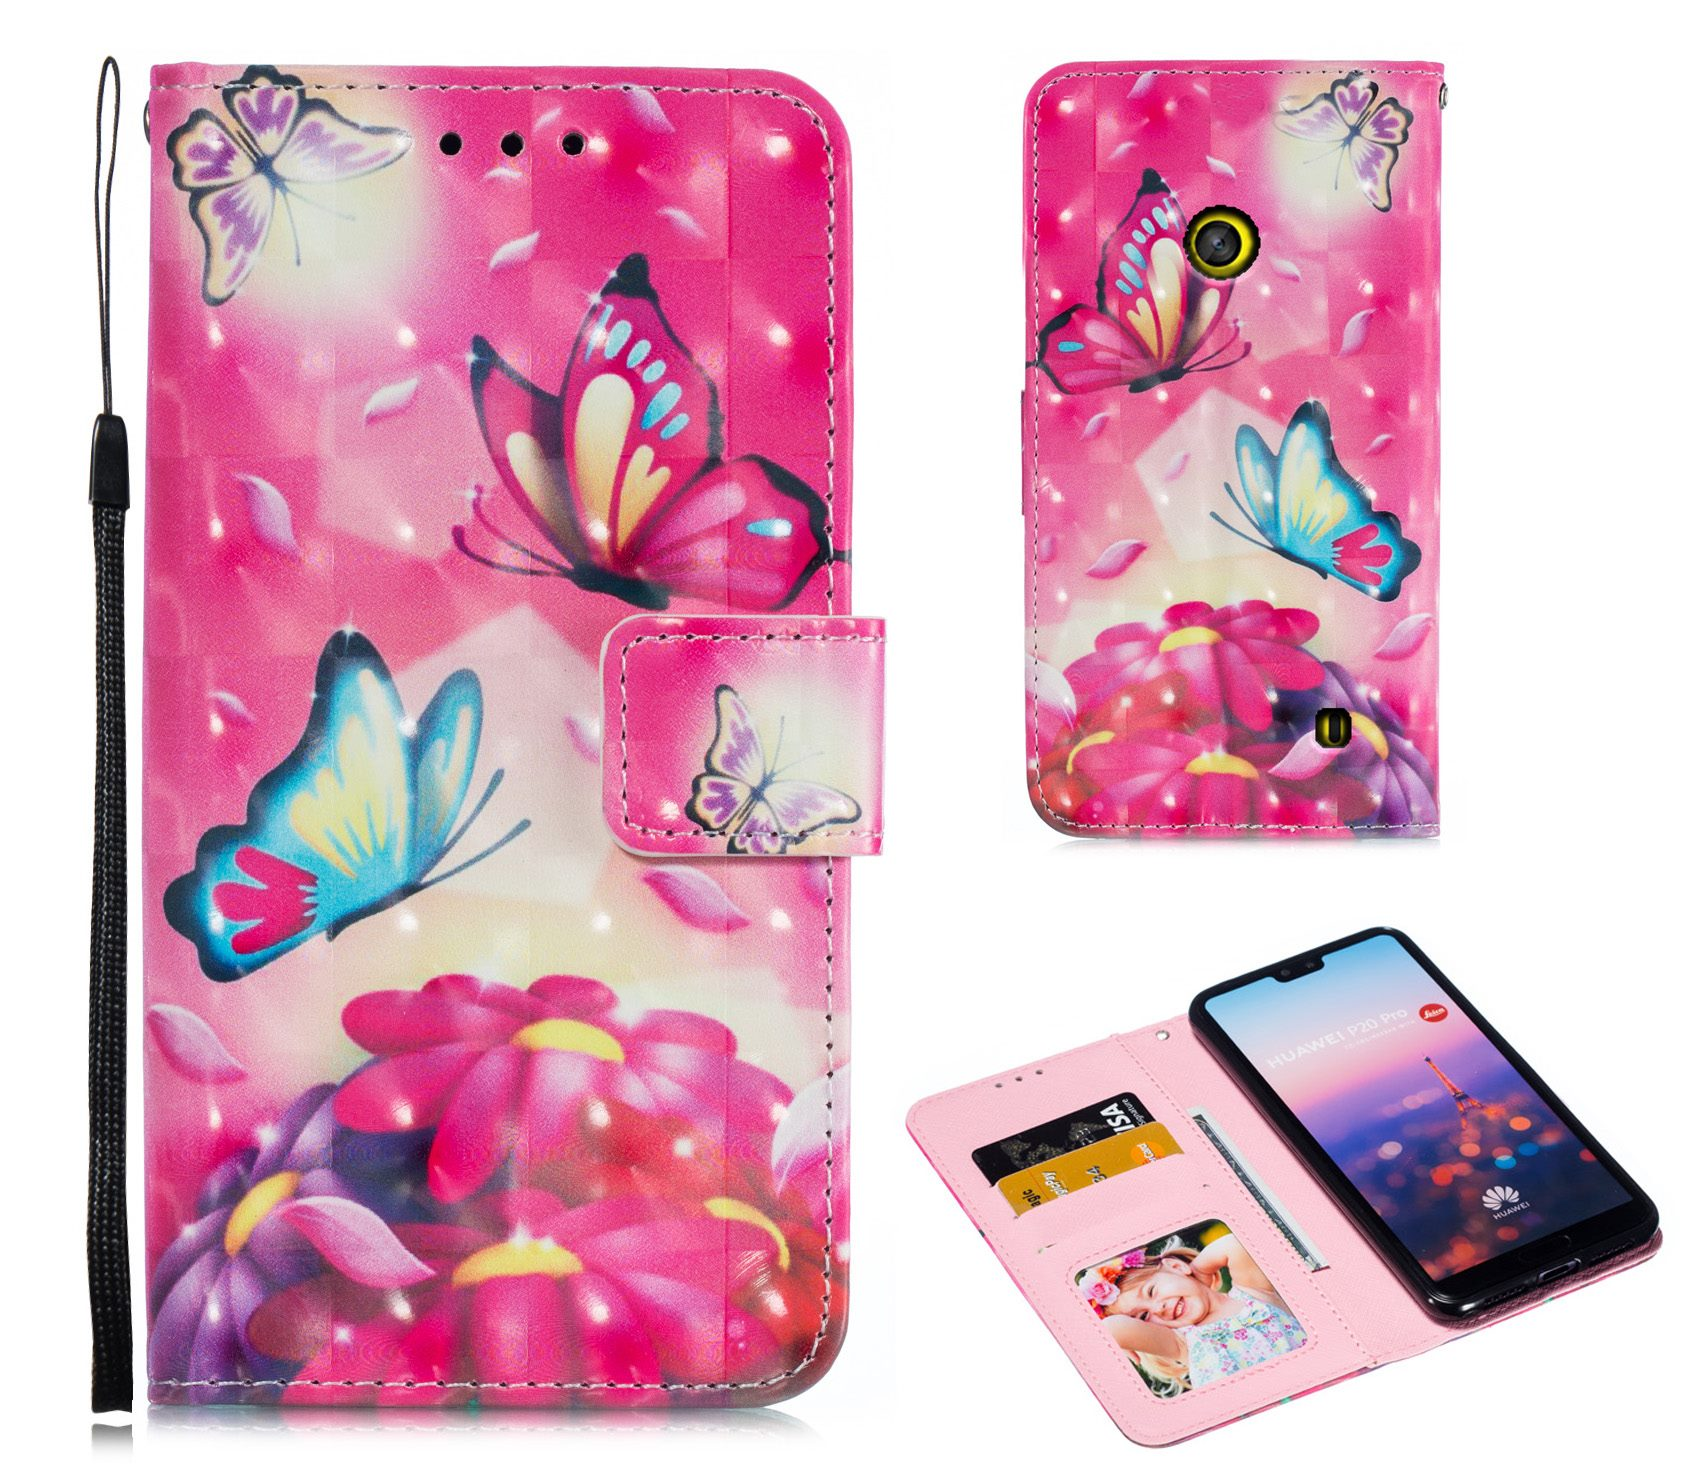 Nokia lumia 520 PU leather wallet case 3D pattern card slots  kickstand,magnet